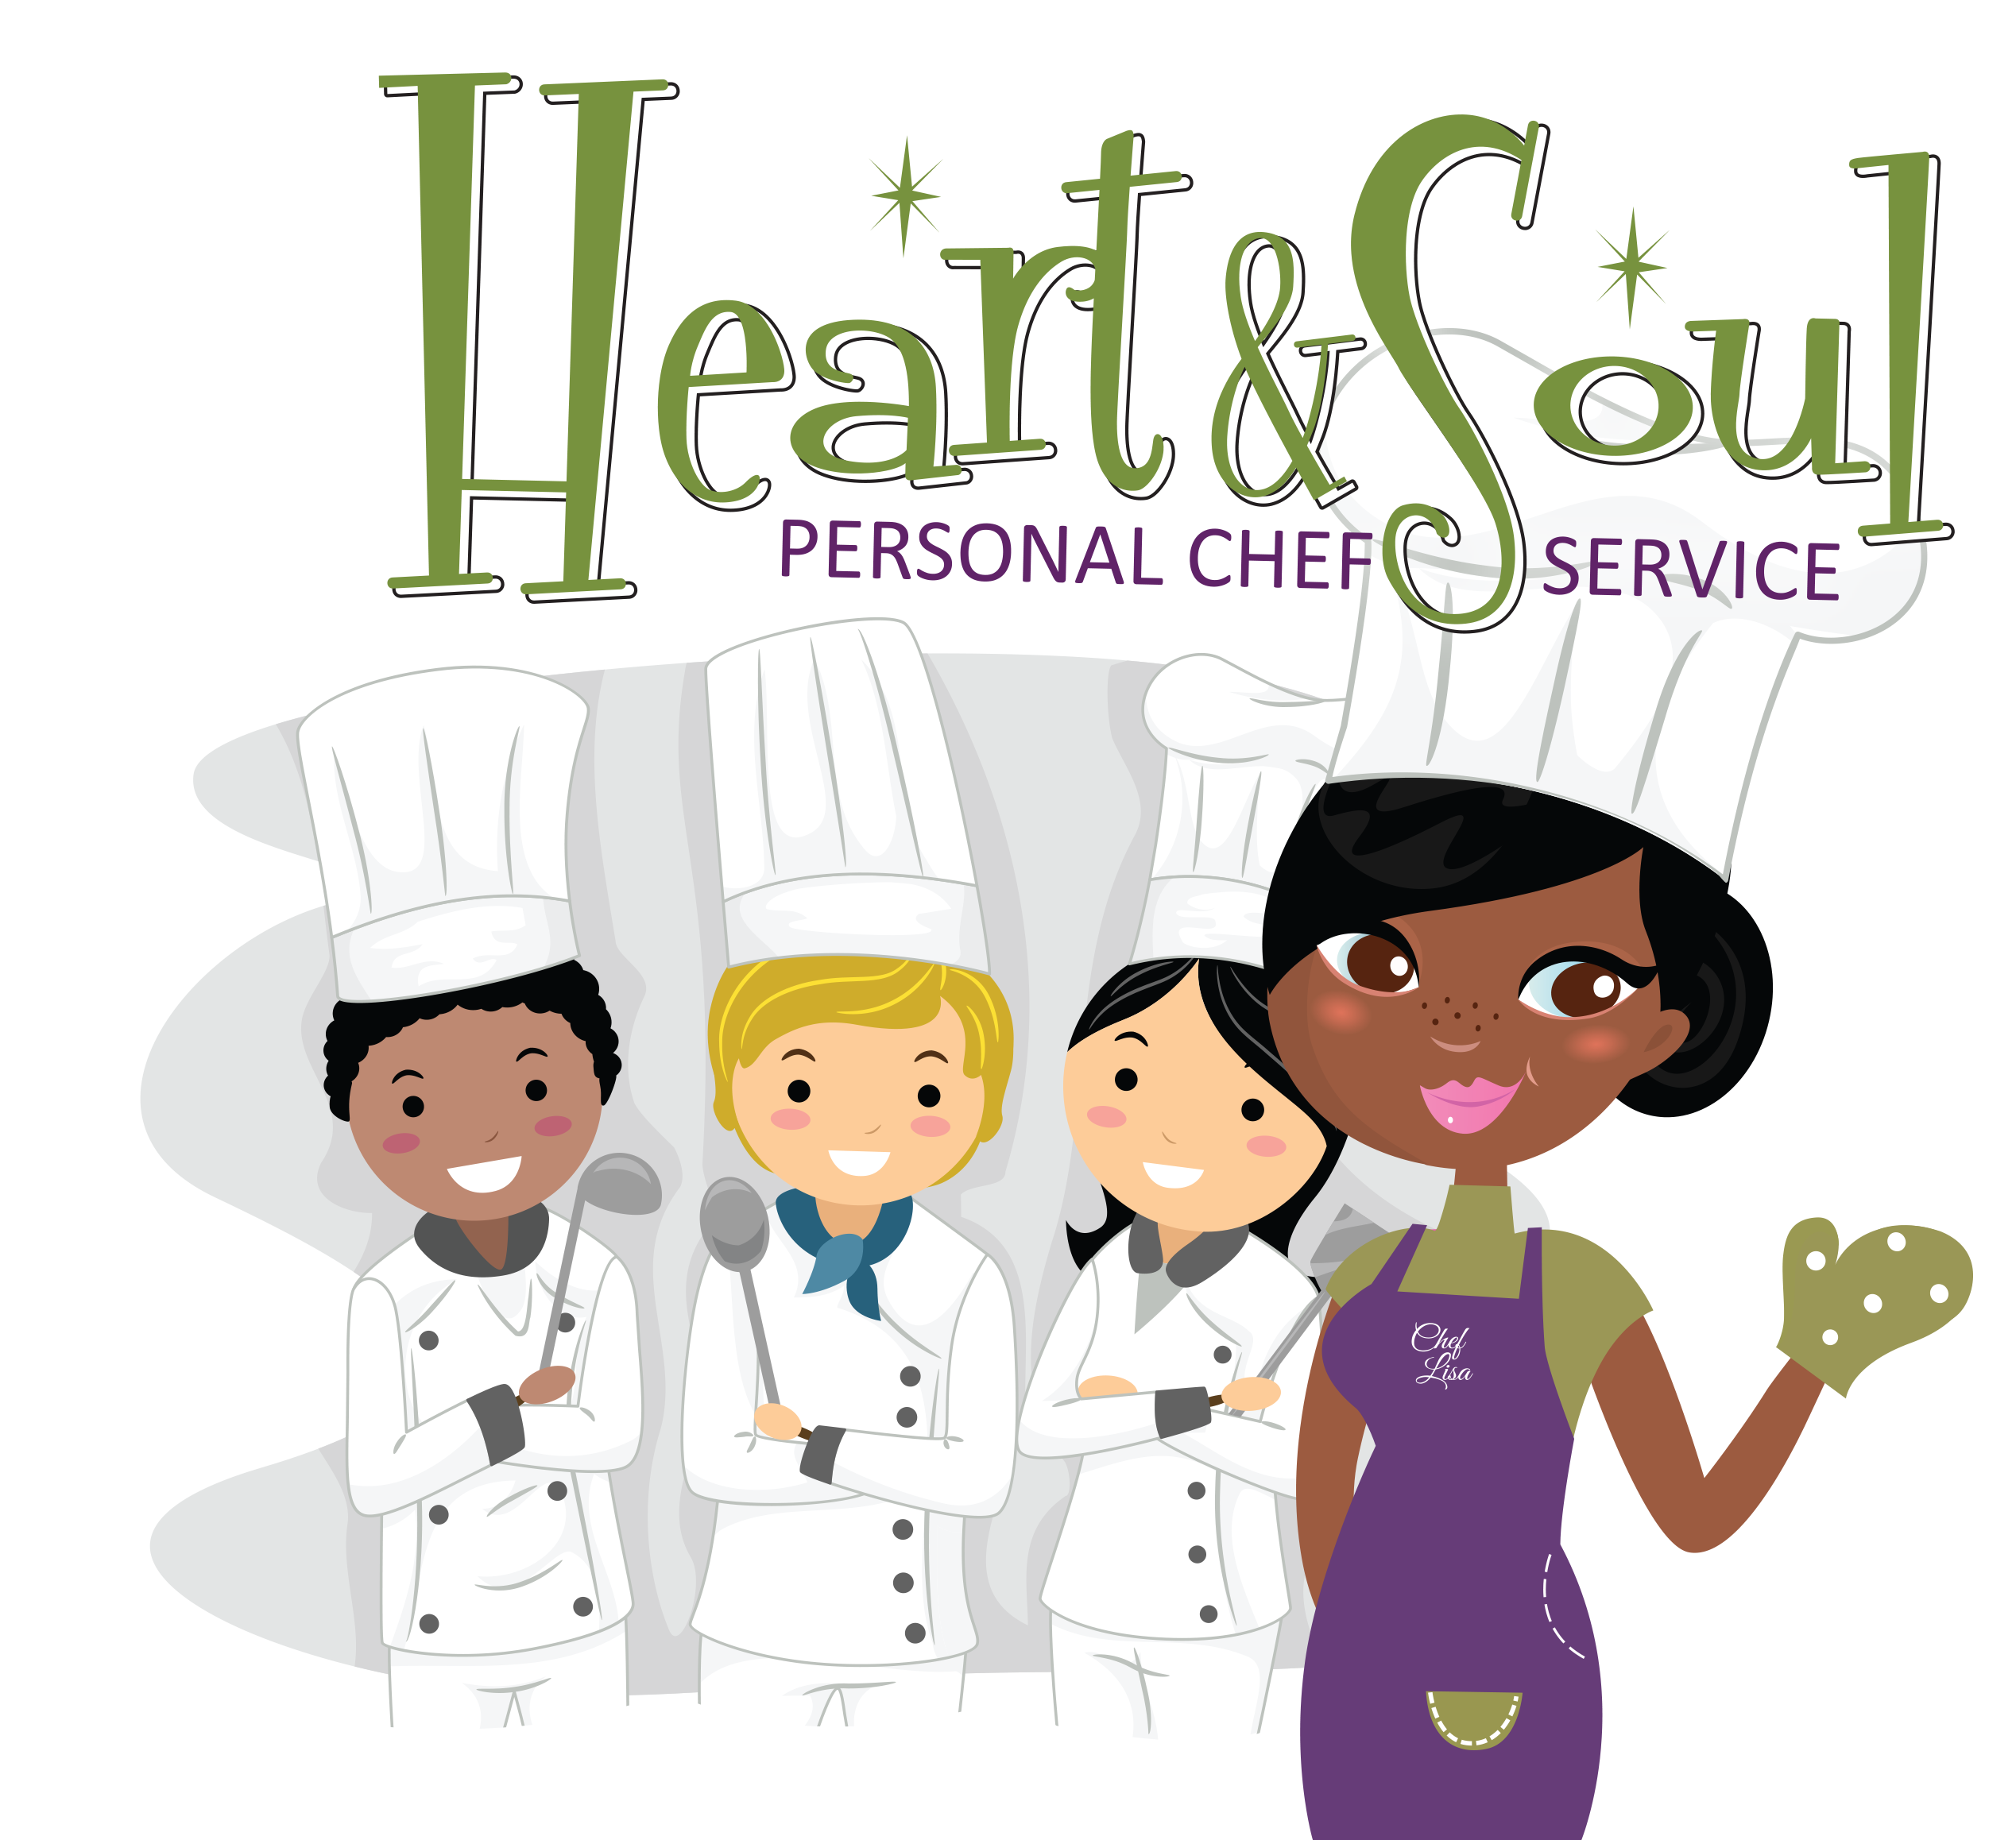 Catering clipart hotel cook. Heart soul personal chef